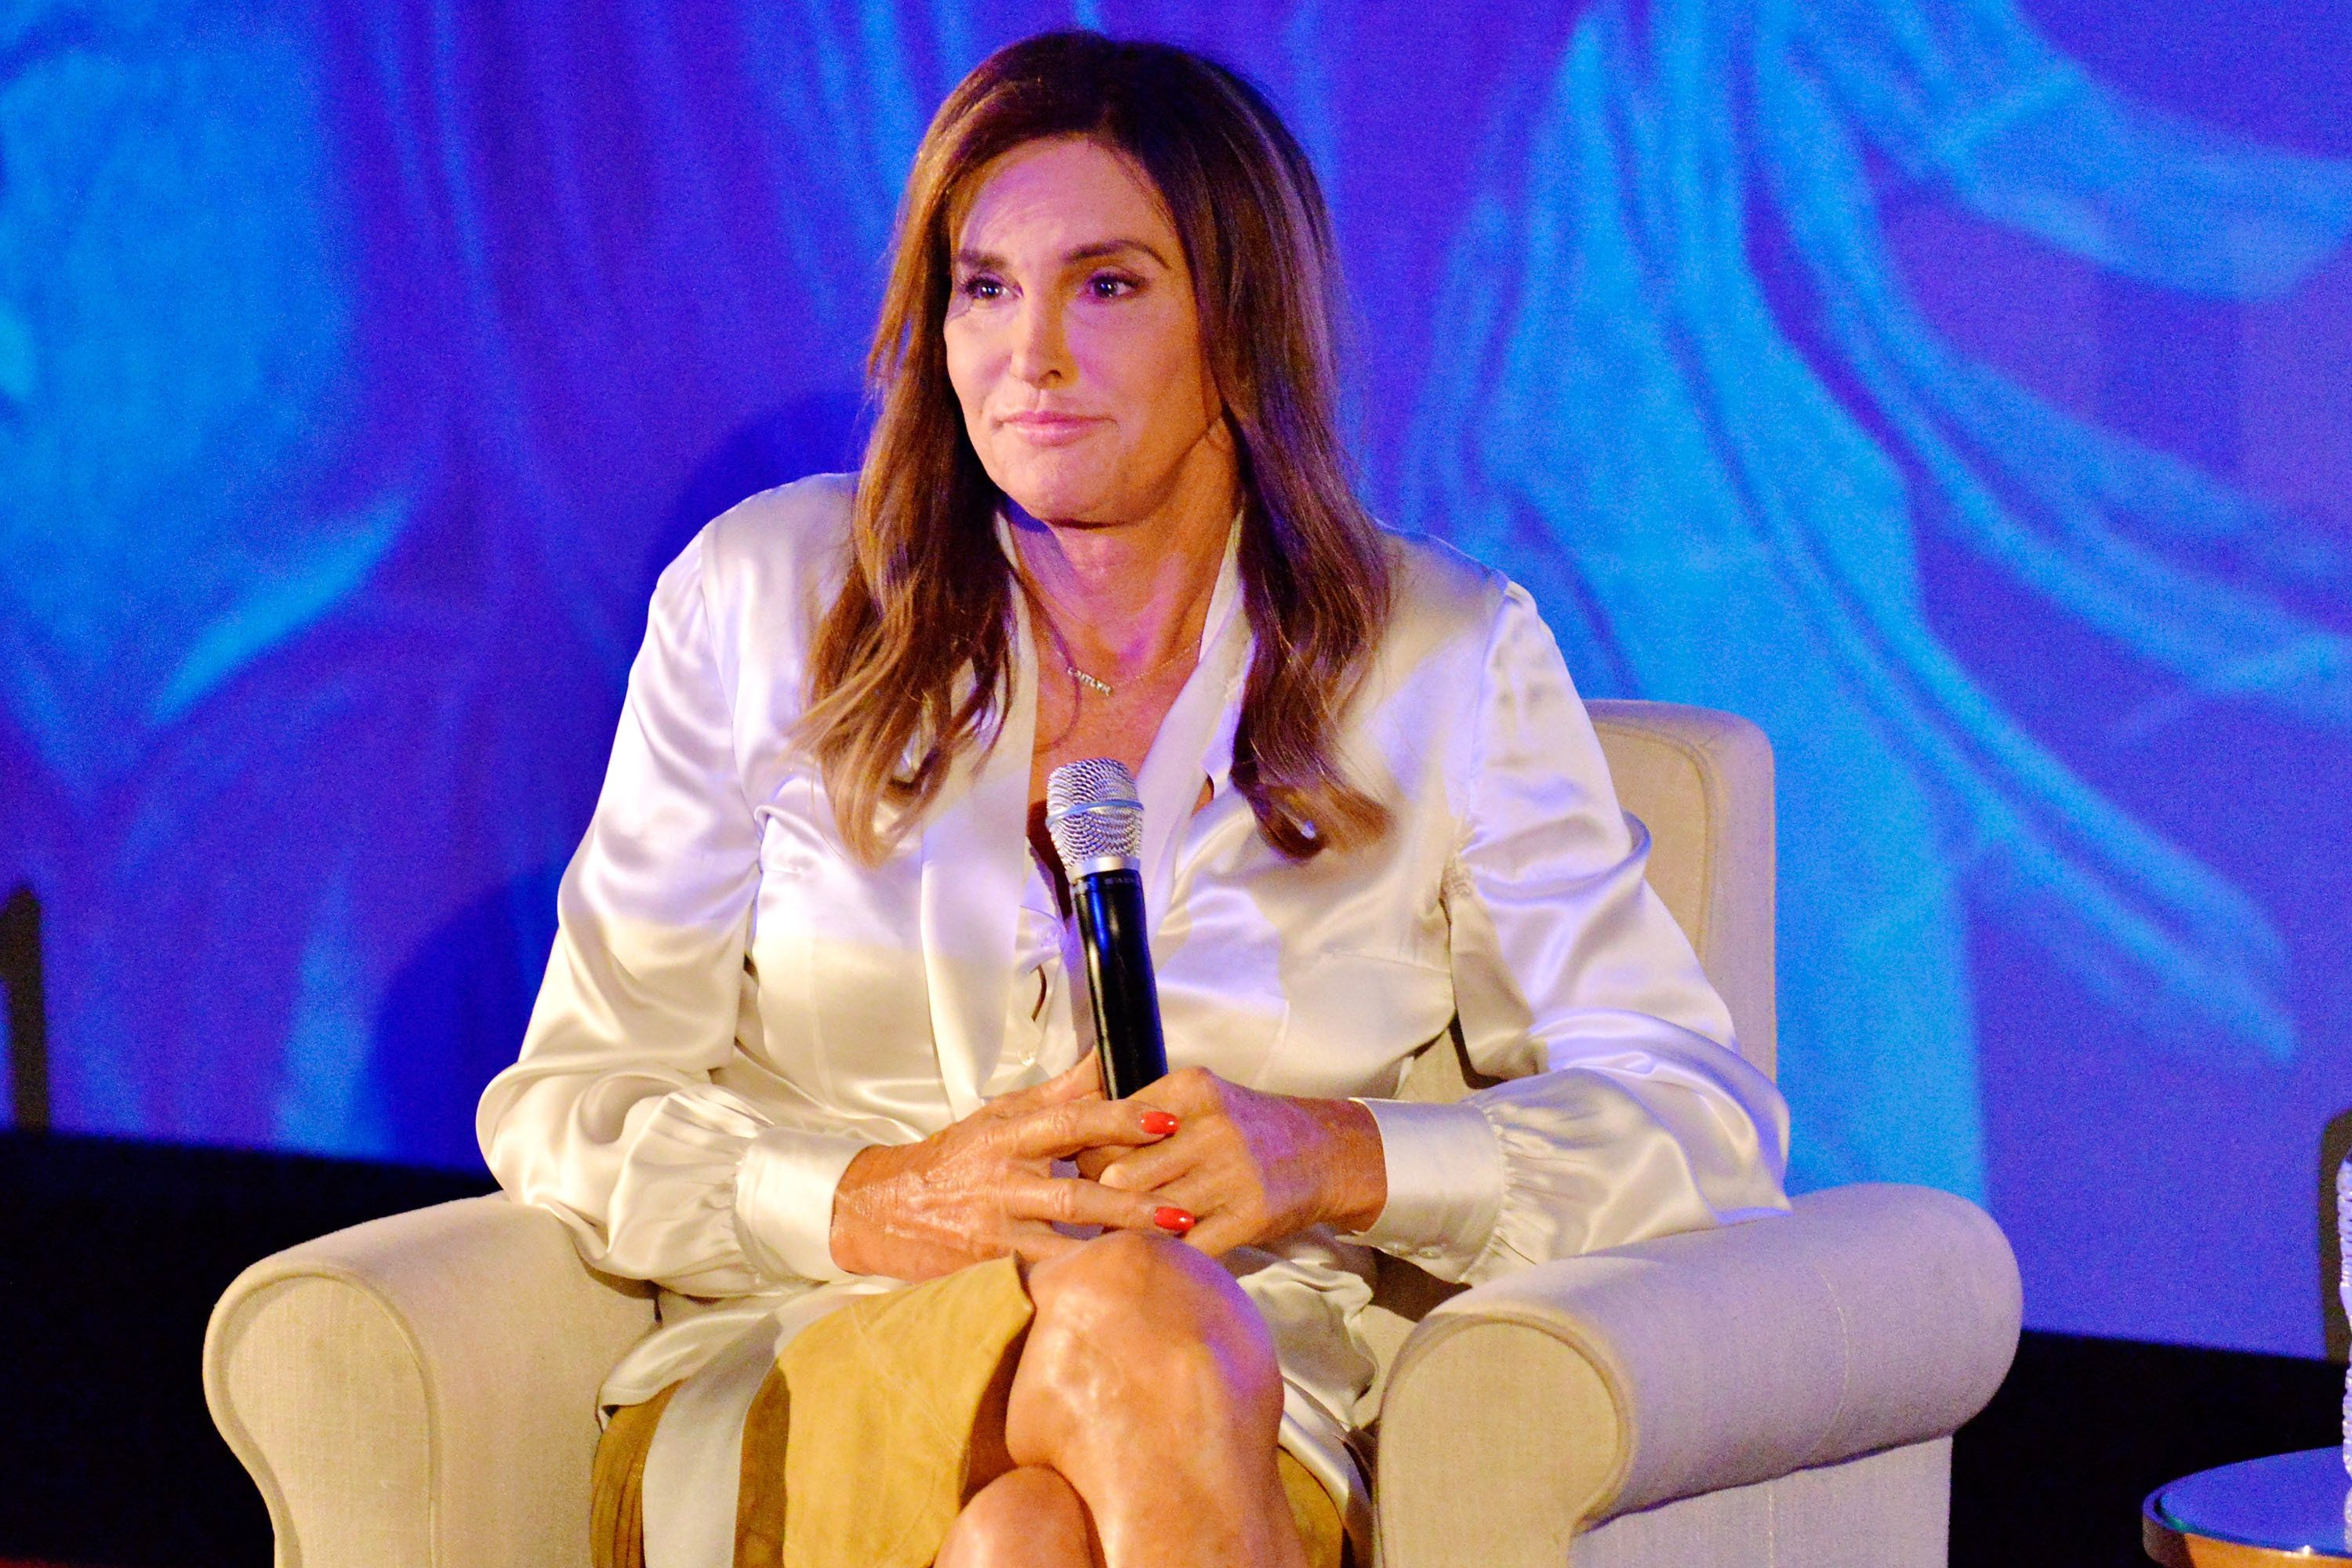 LOS ANGELES, CA - AUGUST 01:  Television personality Caitlyn Jenner attends WORLDZ Cultural Marketing Summit at Hollywood and Highland on August 1, 2017 in Los Angeles, California.  (Photo by Jerod Harris/Getty Images for PTTOW!)